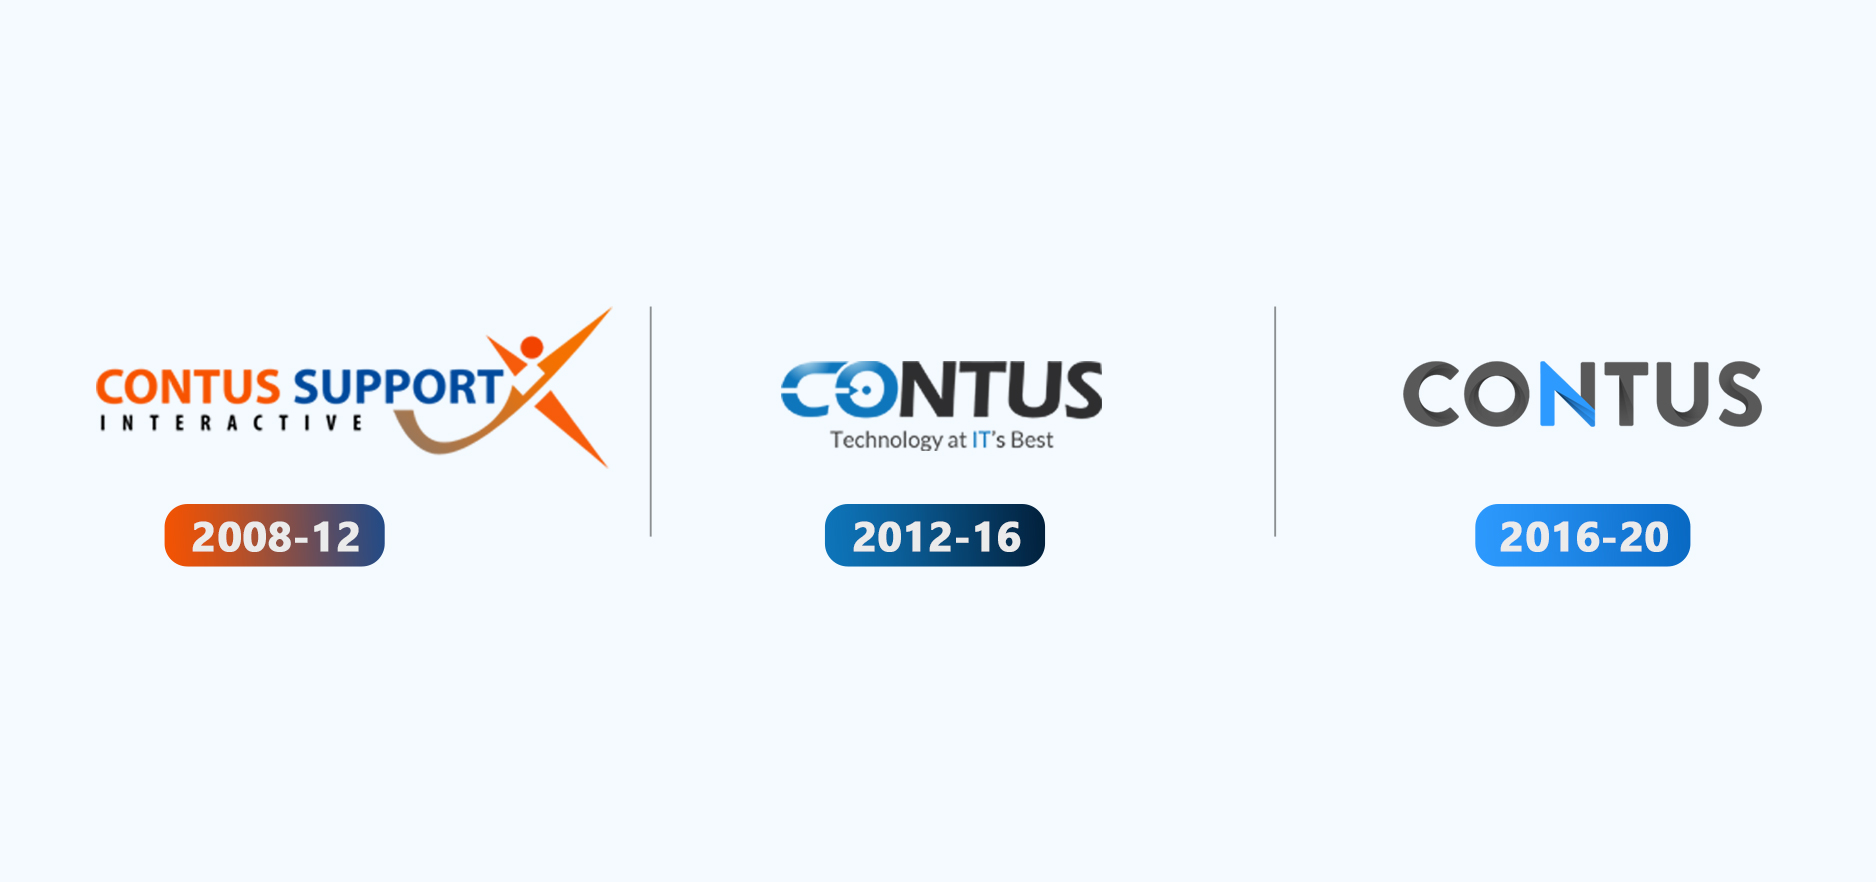 CONTUS Evolution